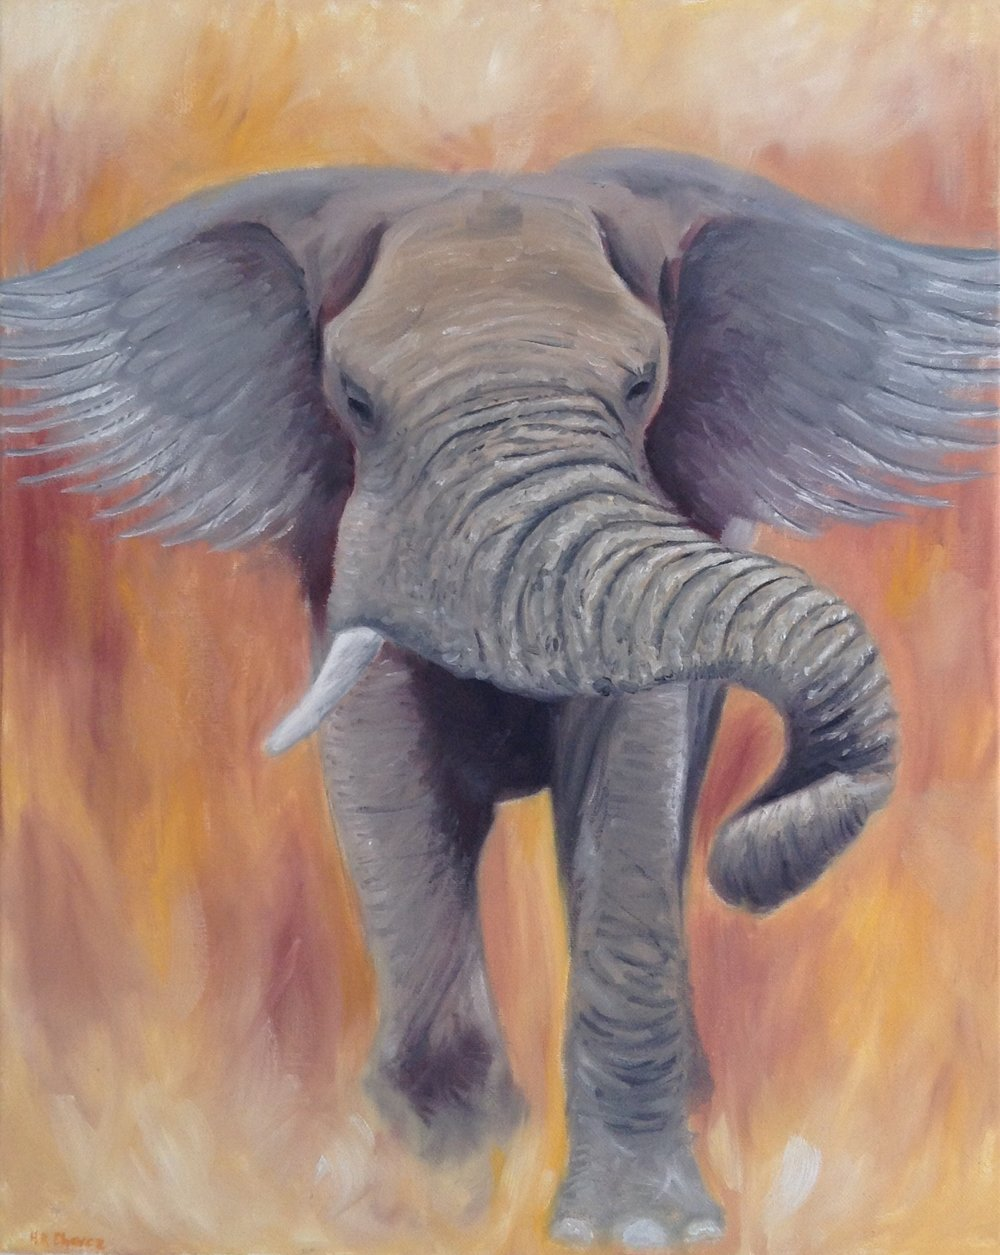 """Elephant Wings"" by Hannah Chavez"